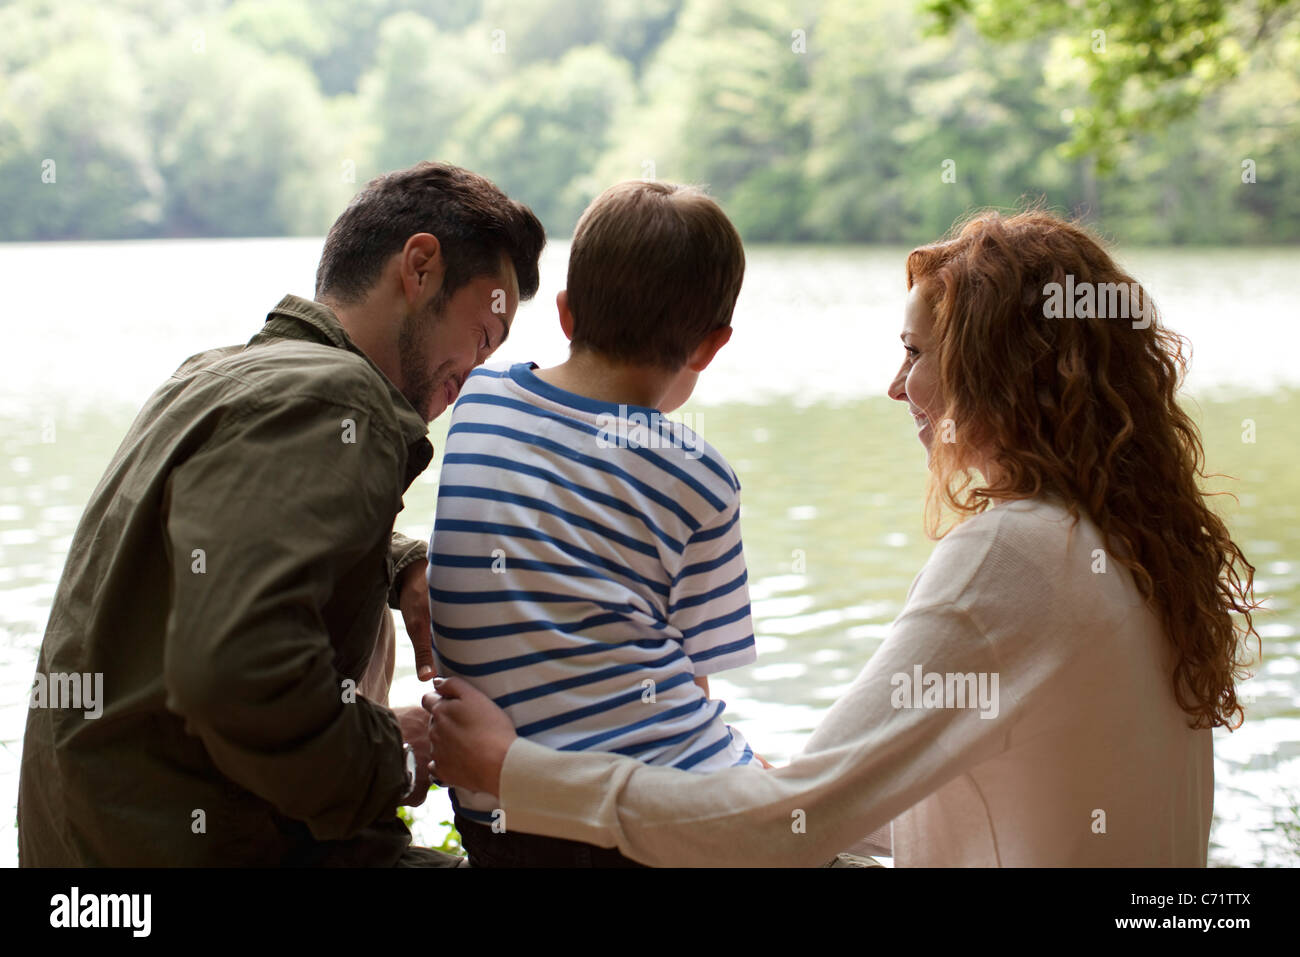 Family by lake, rear view - Stock Image